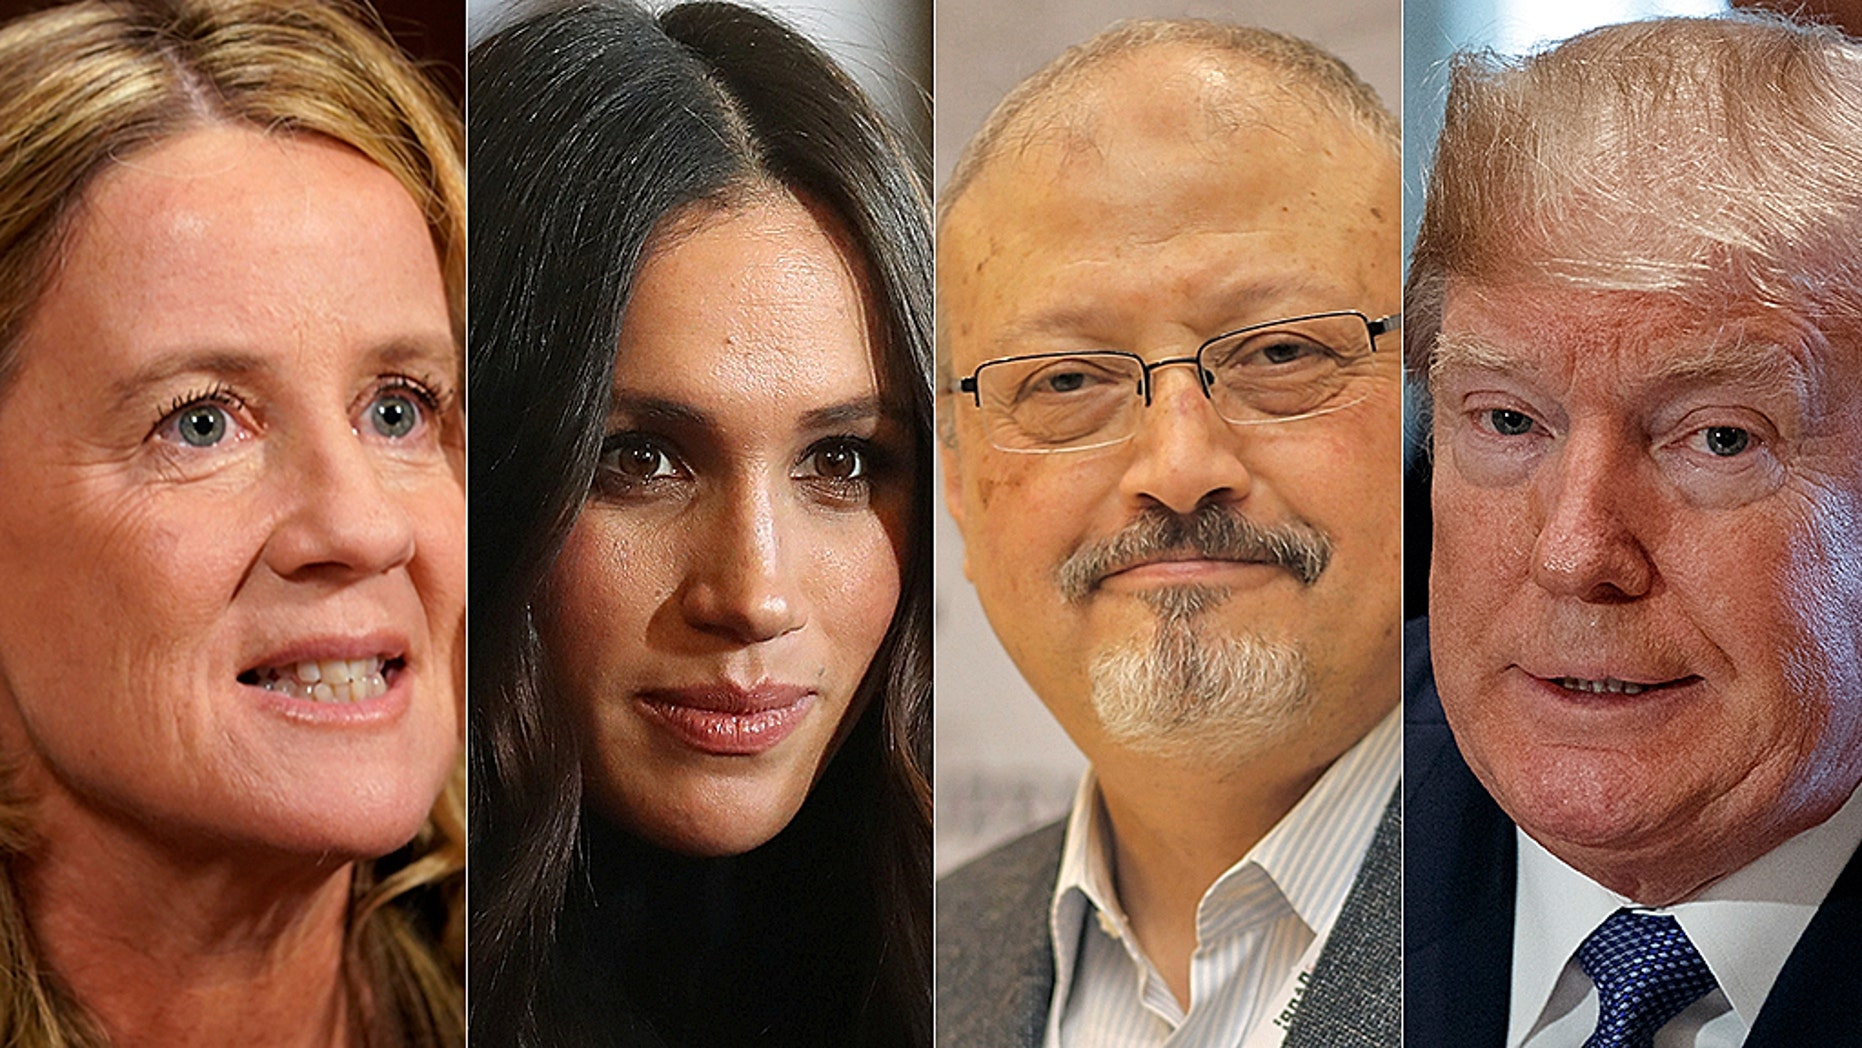 Khashoggi among journalists named Time's Person of the Year